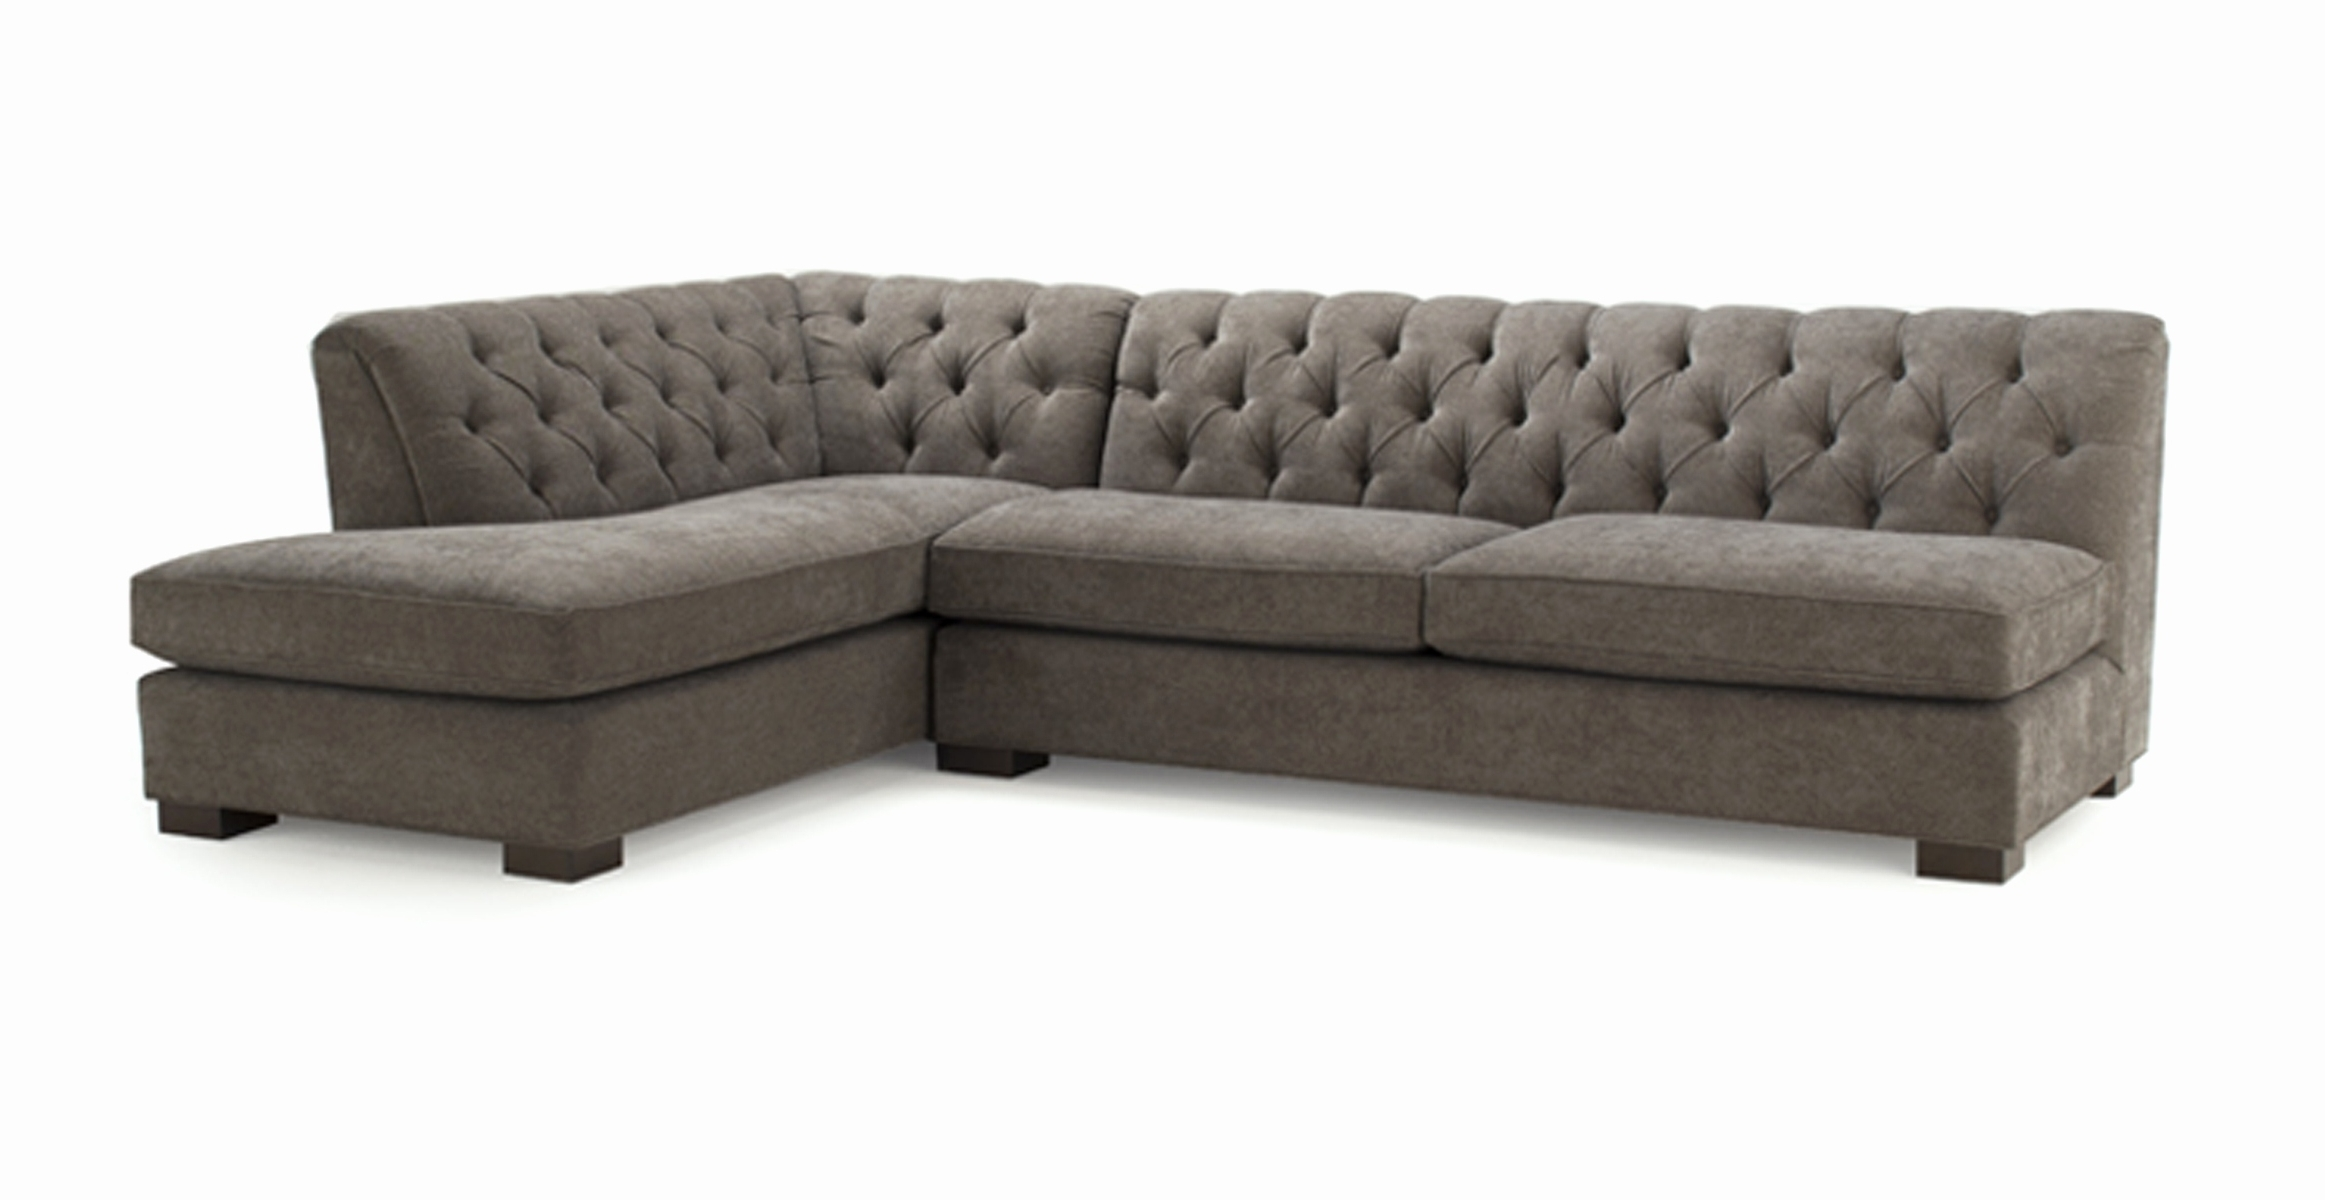 Best Mitchell Gold Sleeper Sofa Price 2018 – Couches And Sofas Ideas With Regard To Trendy Lane Furniture Sofas (View 2 of 15)